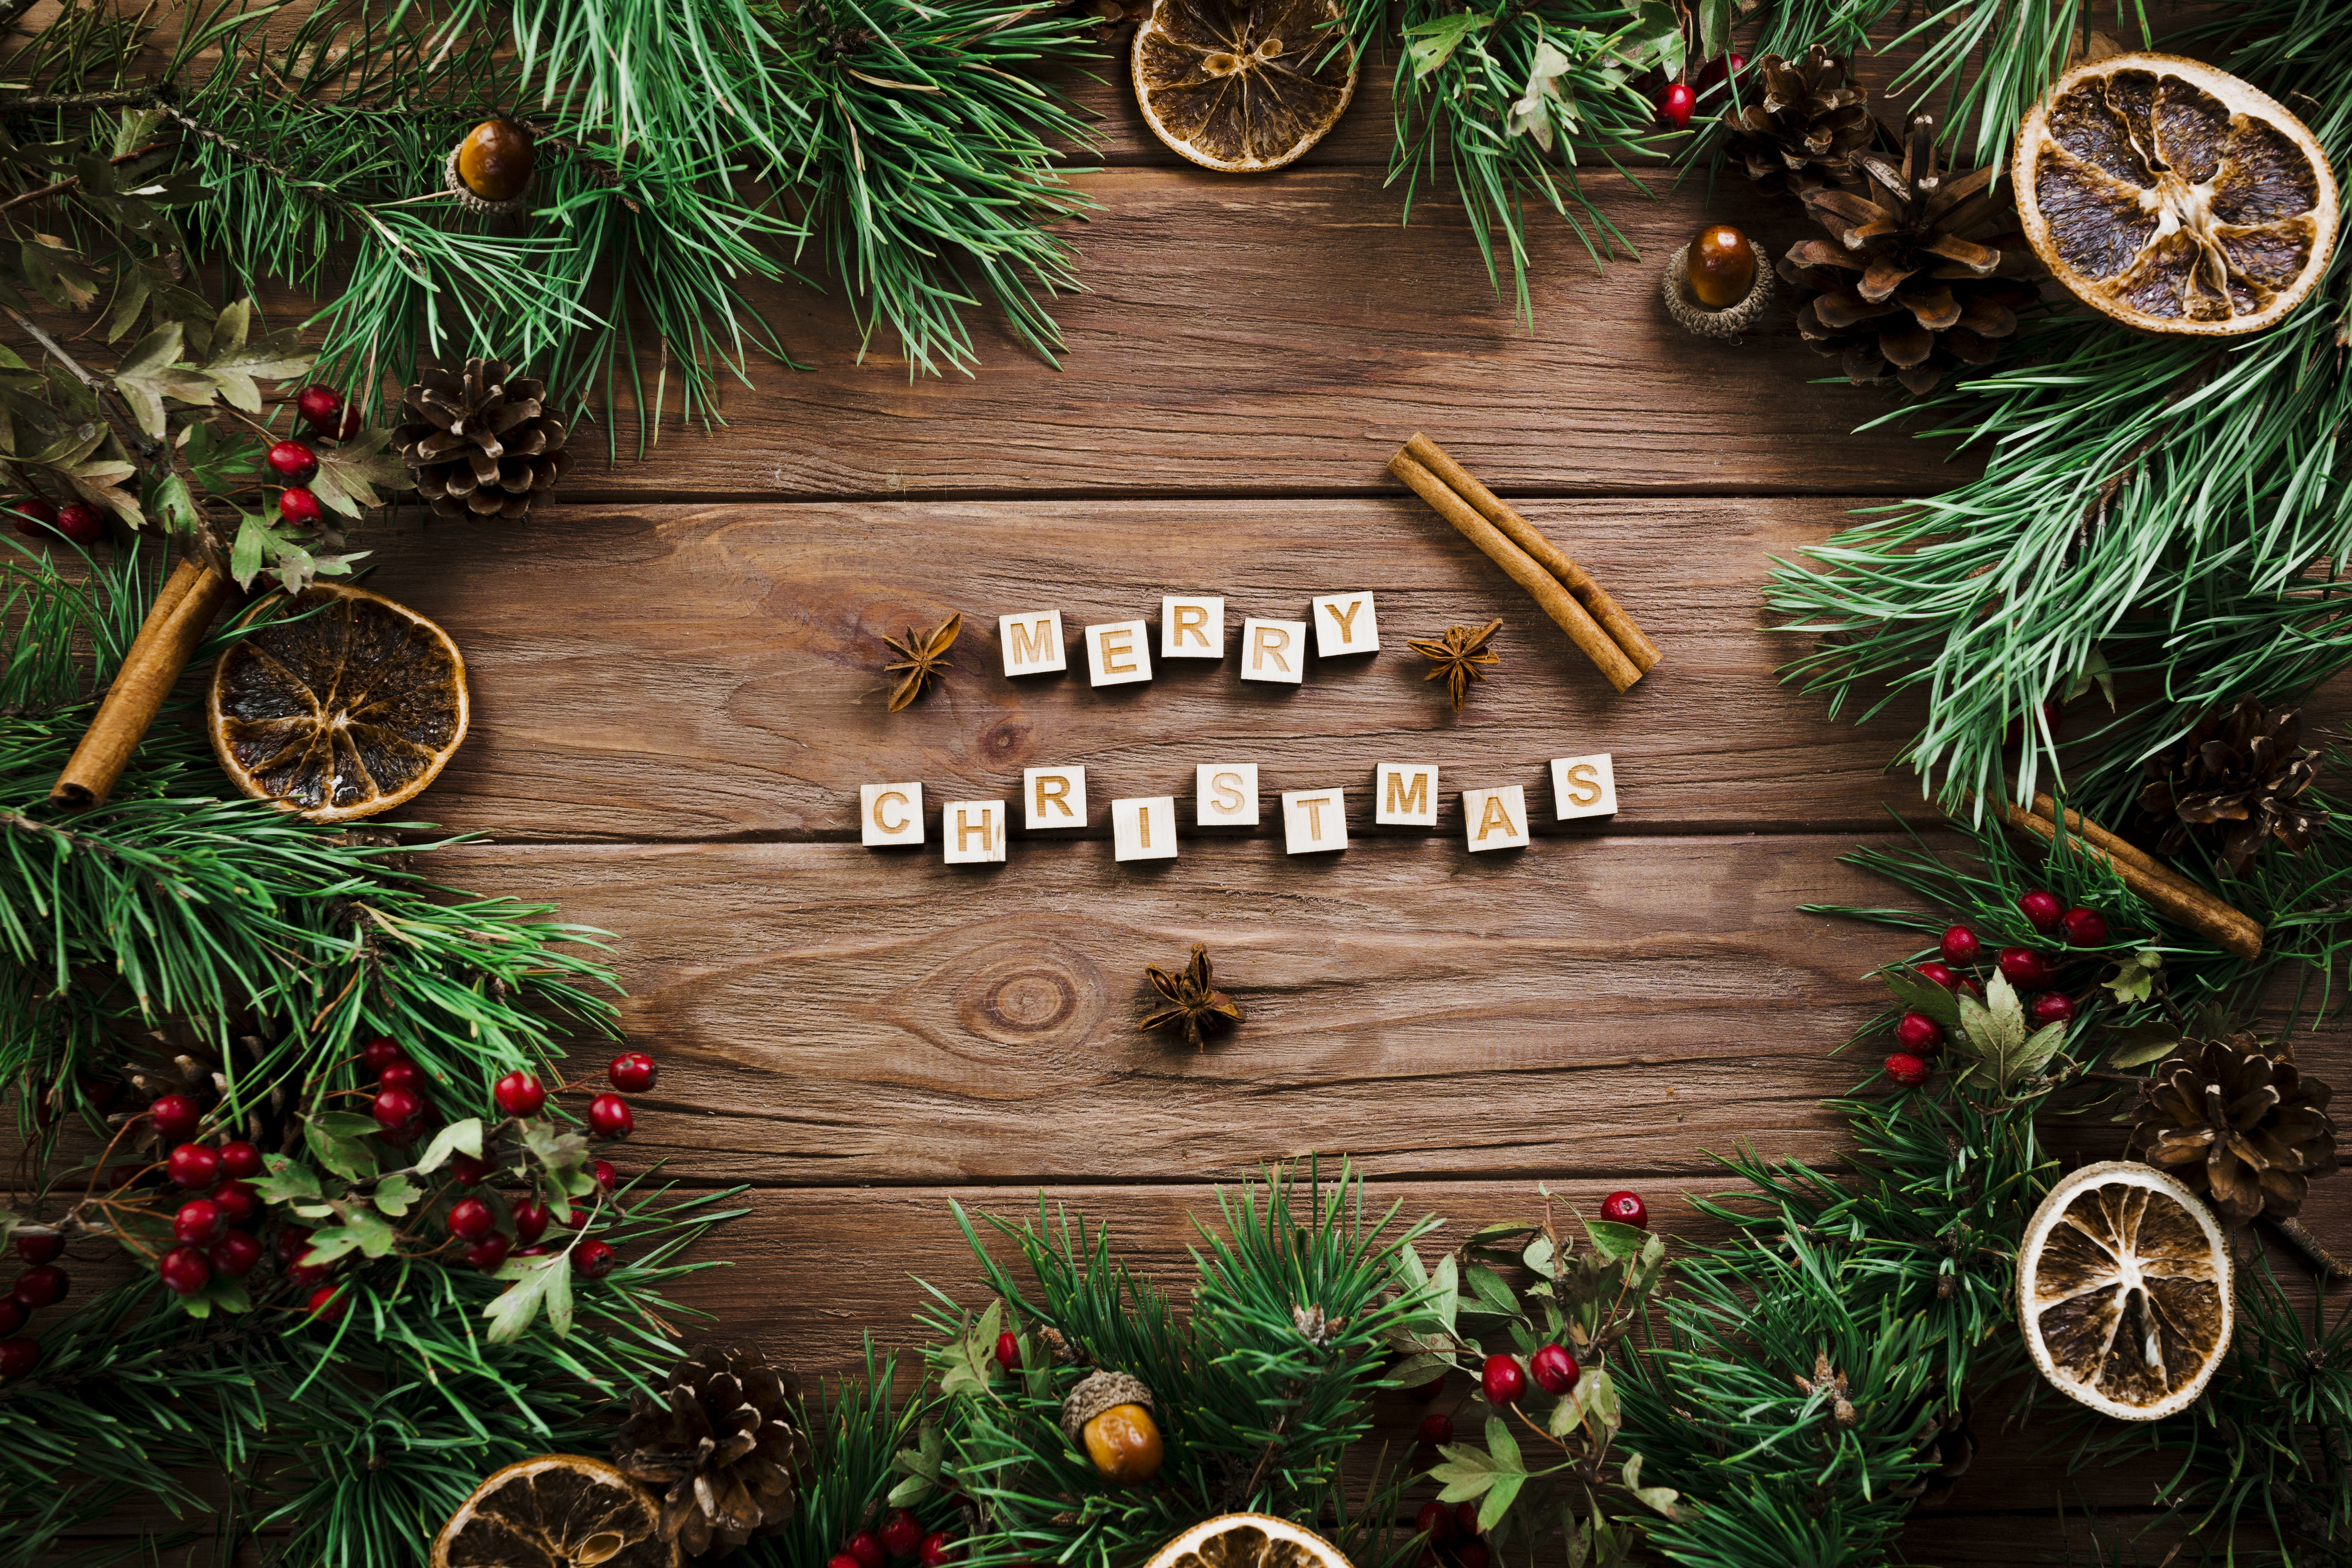 Wallpaper Merry Christmas lettering on a wooden table with fir branches.